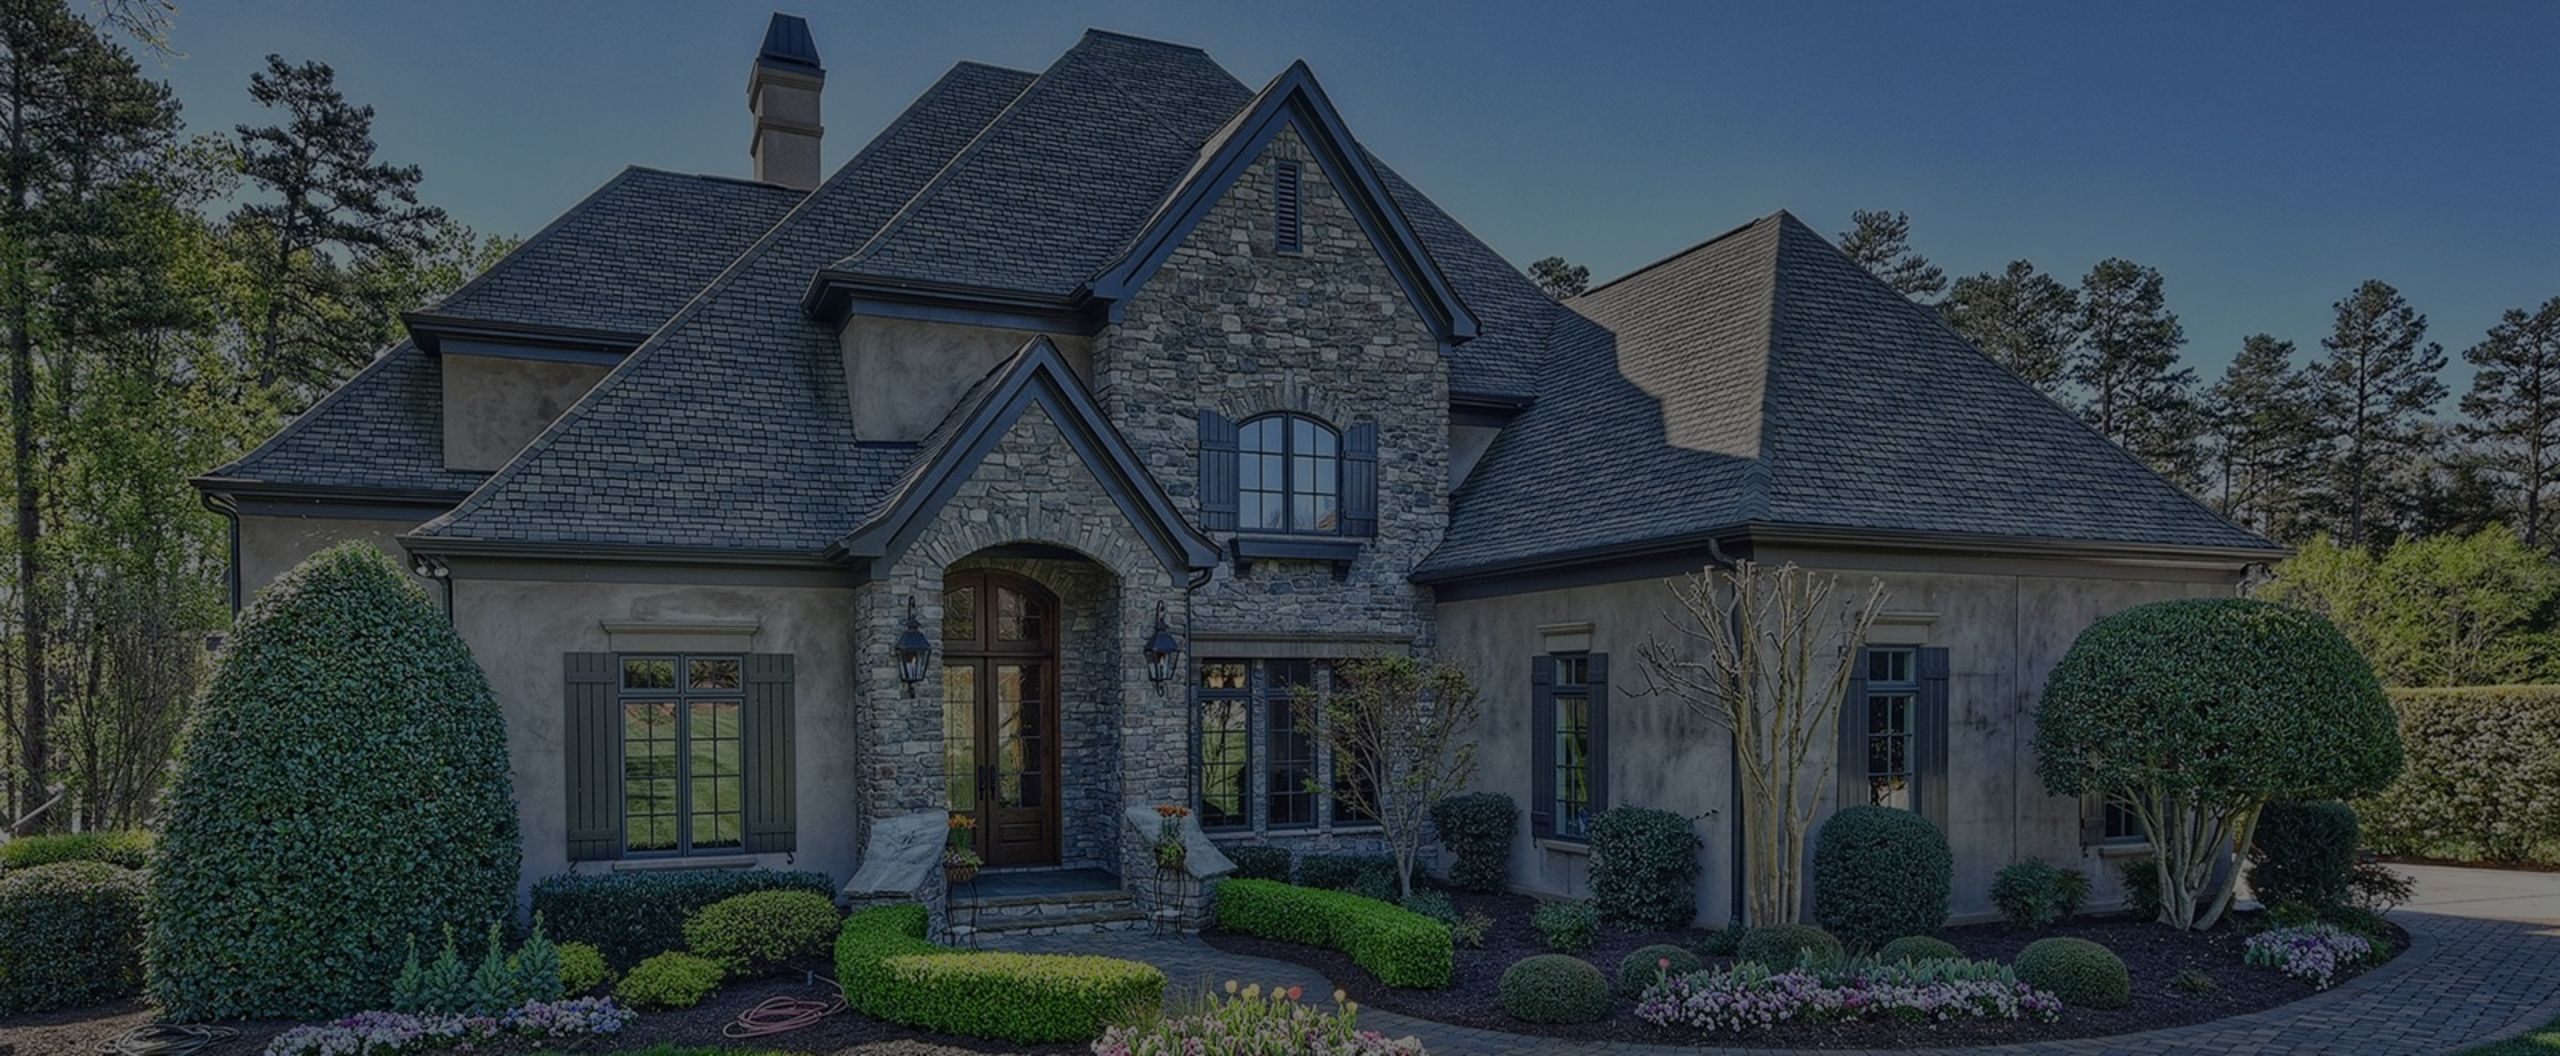 Exceptionally luxurious home in Mooresville, NC.